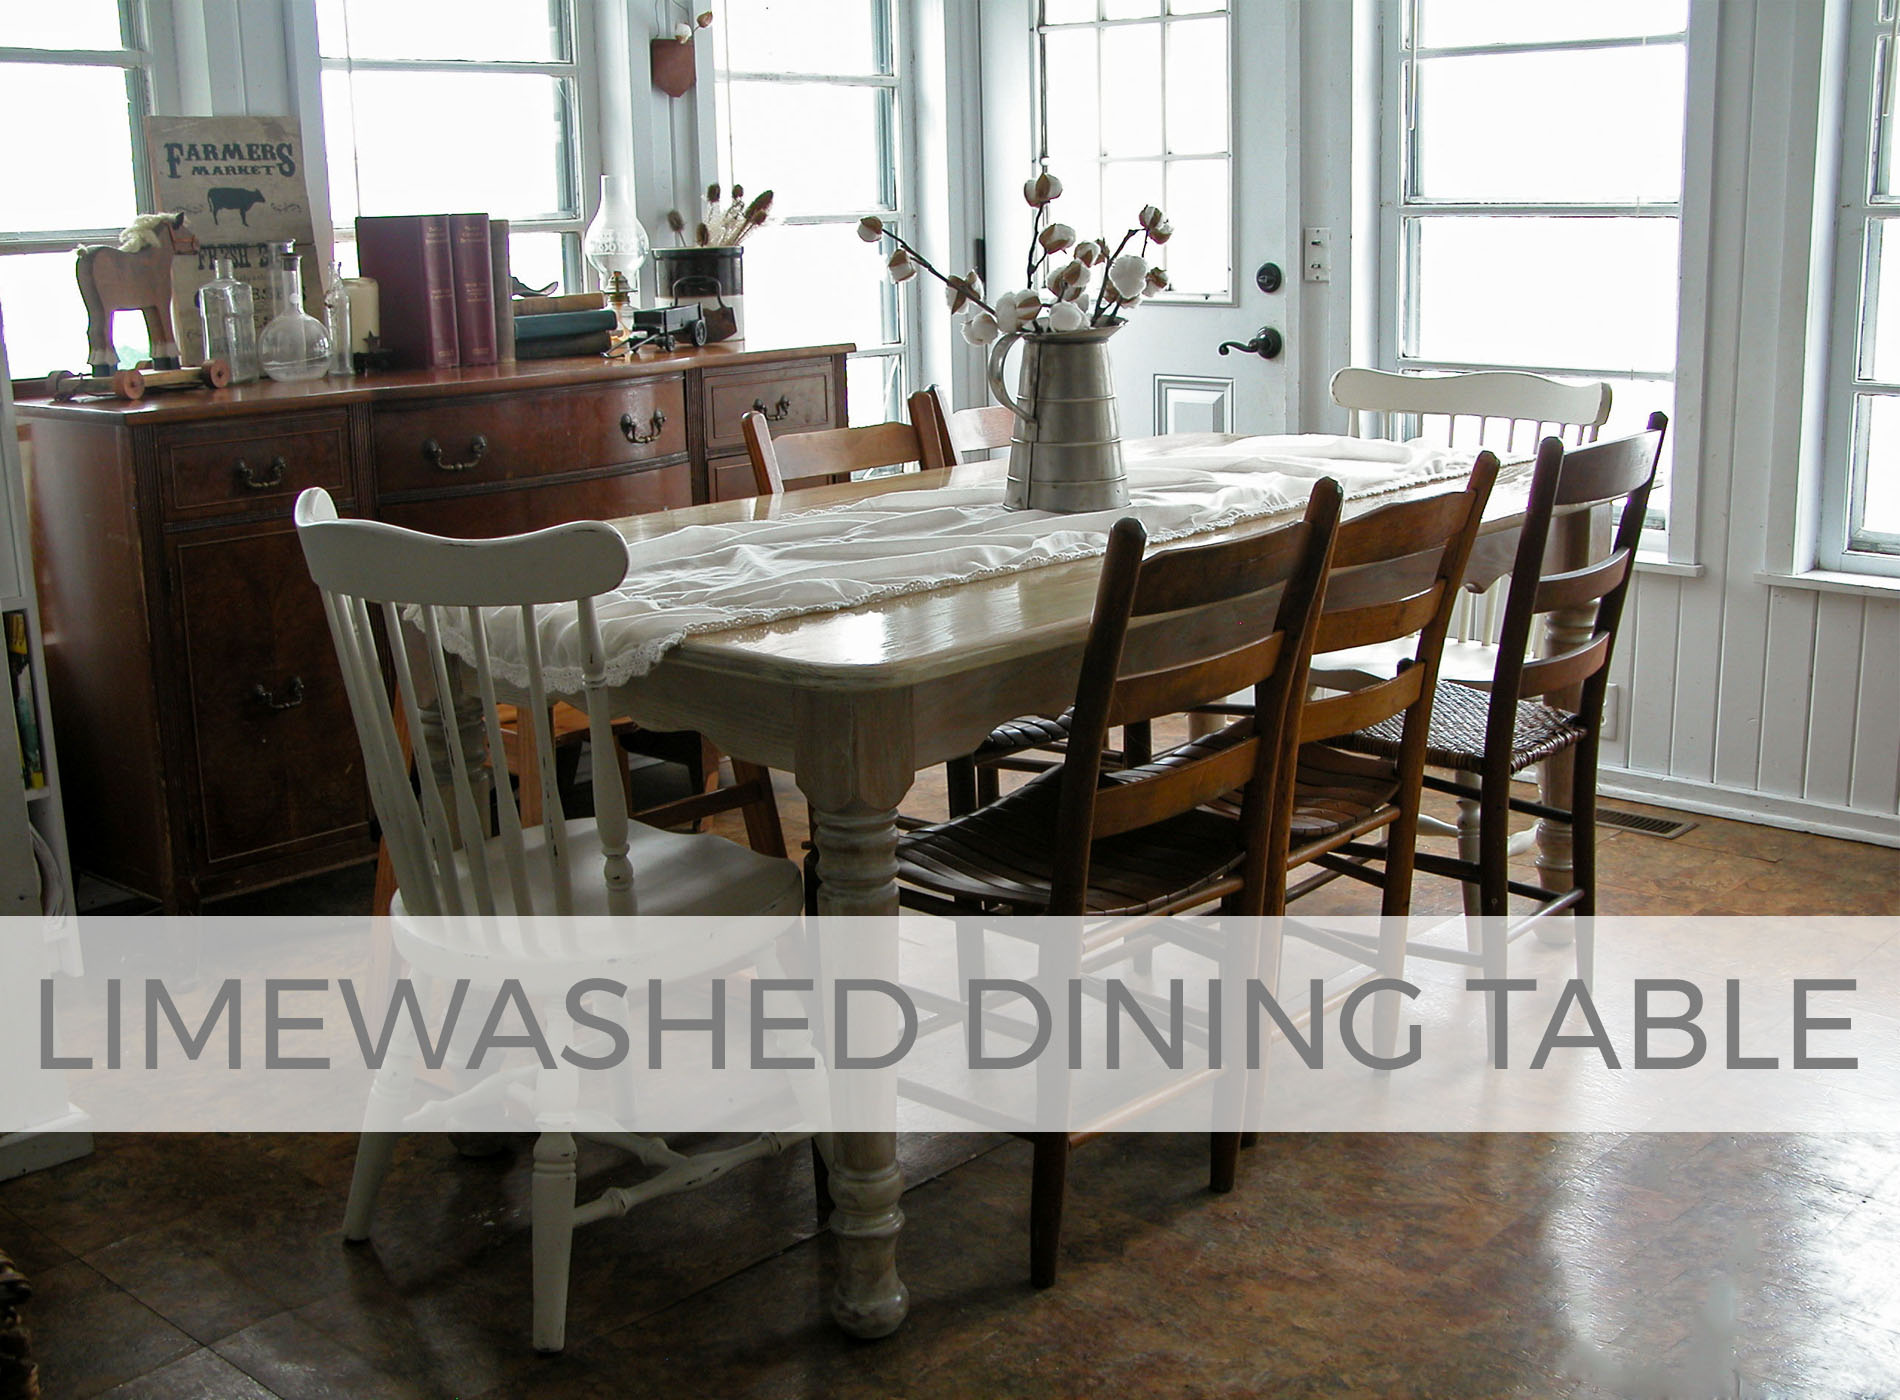 Limewashed Dining Table Tutorial by Larissa of Prodigal Pieces | prodigalpieces.com